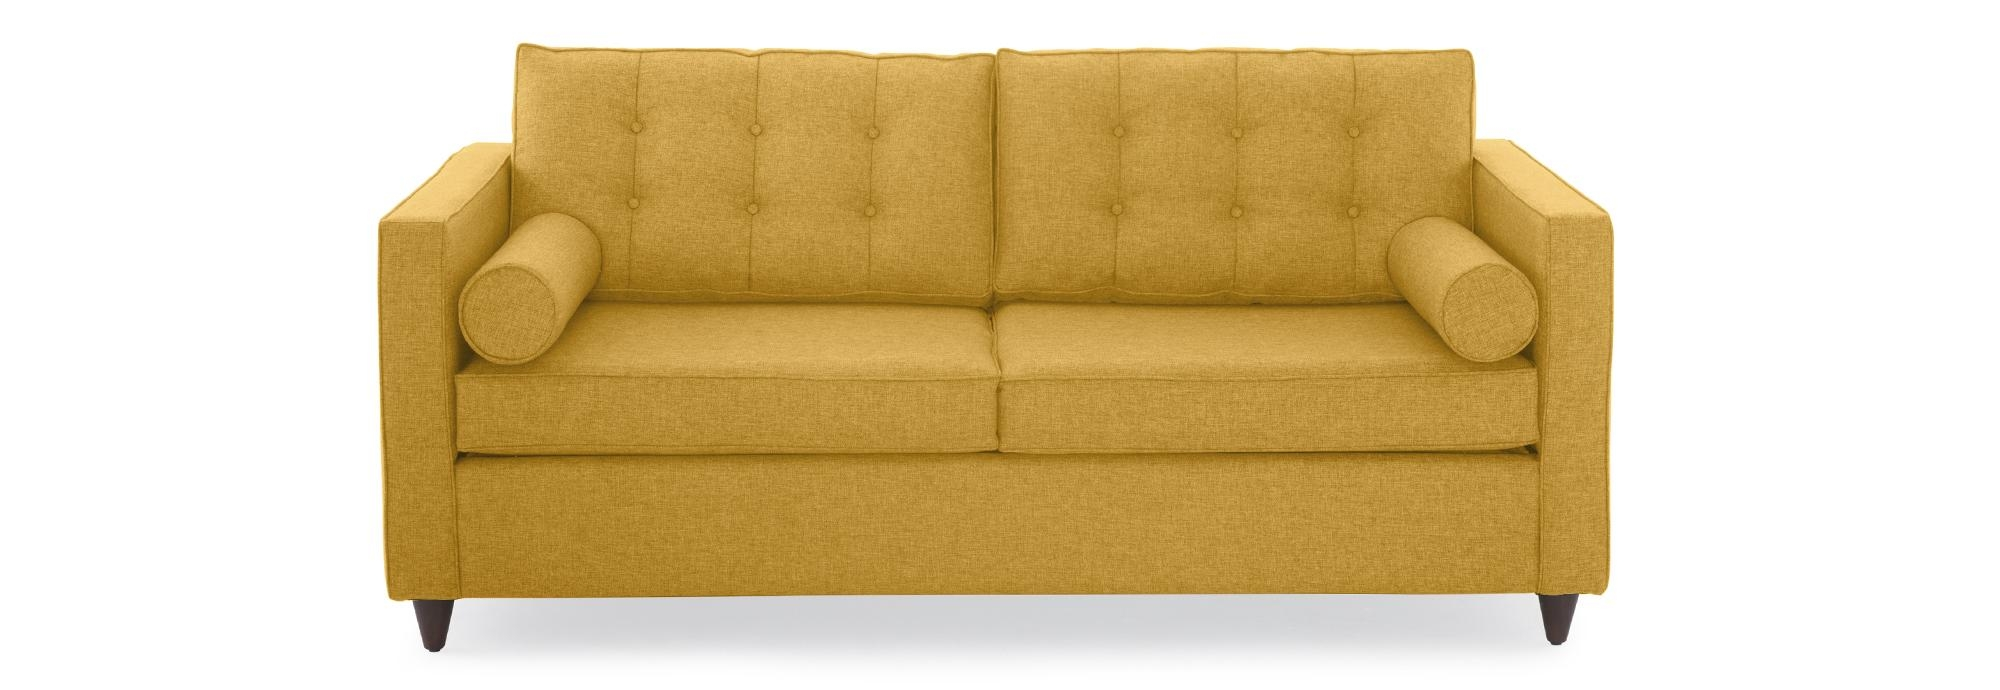 Braxton Sleeper Sofa | Joybird In Braxton Sofa (Image 10 of 20)